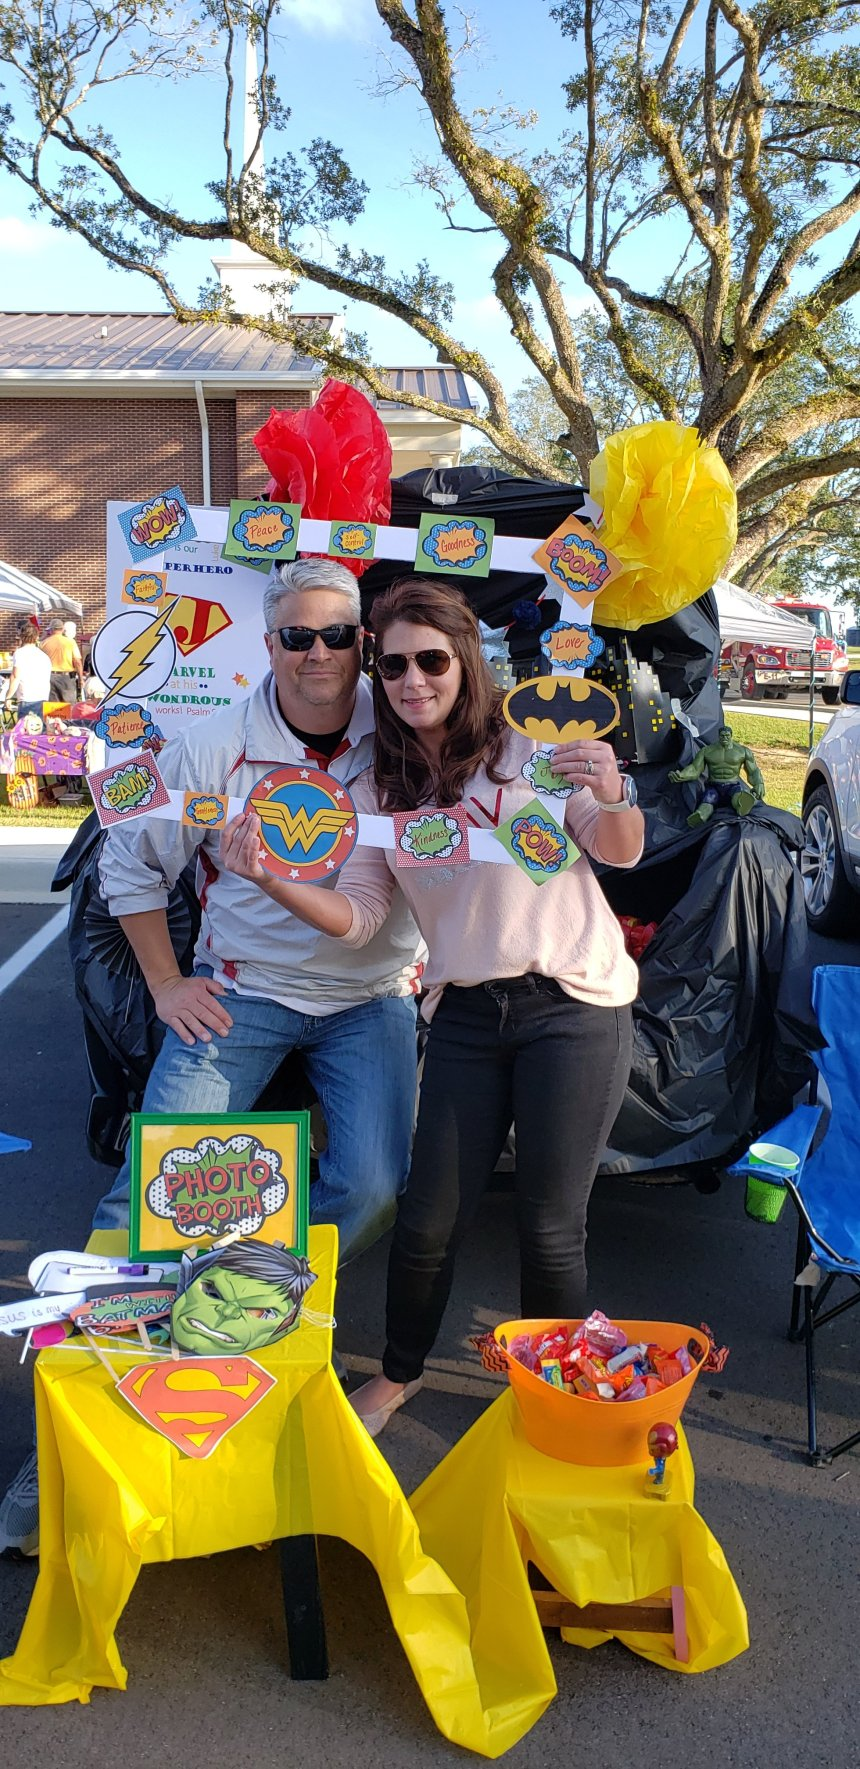 """Superhero trunk or treat idea: a photo booth. My husband & I are holding a """"Polaroid"""" frame made with superhero logos and comic book images around it. In front is a small table with a photo booth sign with masks and other props that can be used in it. Another table holds the candy that the kids can choose from."""